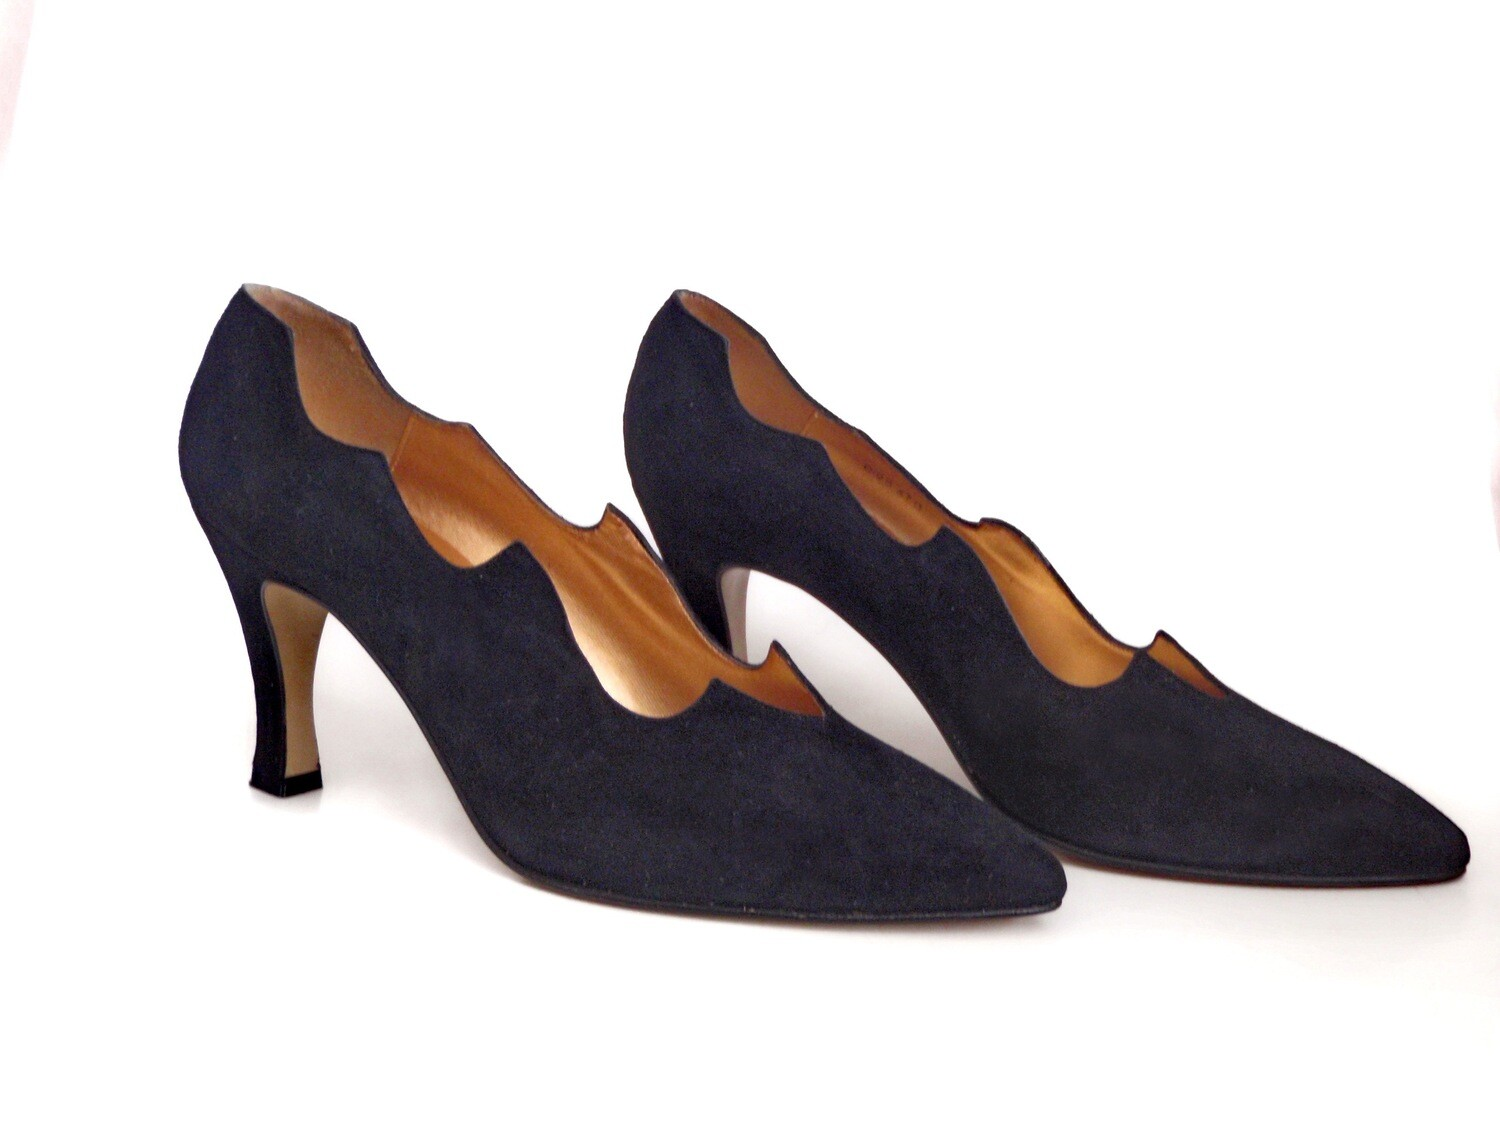 1980s Black Suede Pumps Ladies 9M High Heel Shoes